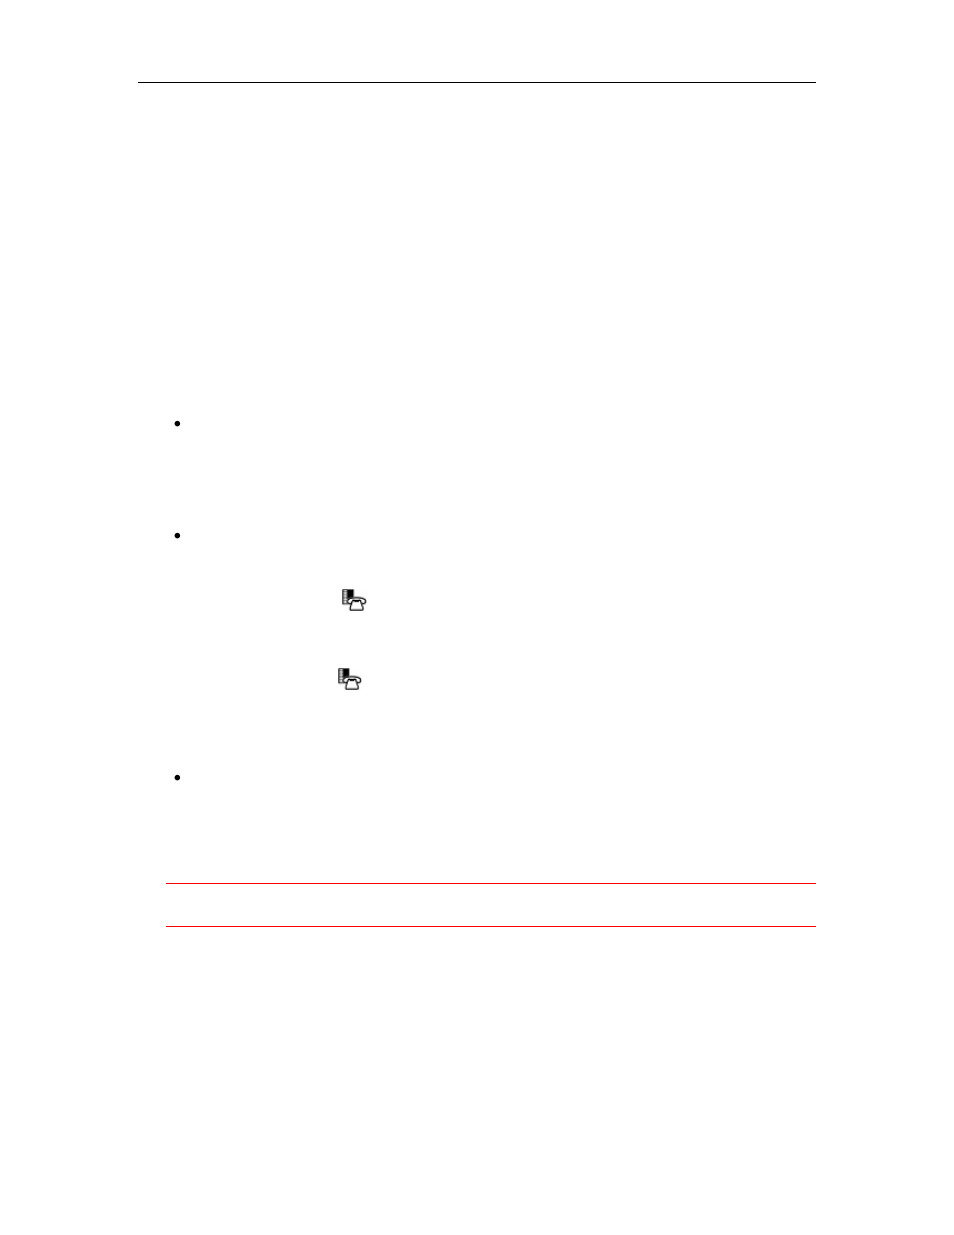 Mitel 5330 IP Phone User Manual | Page 53 / 57 | Also for